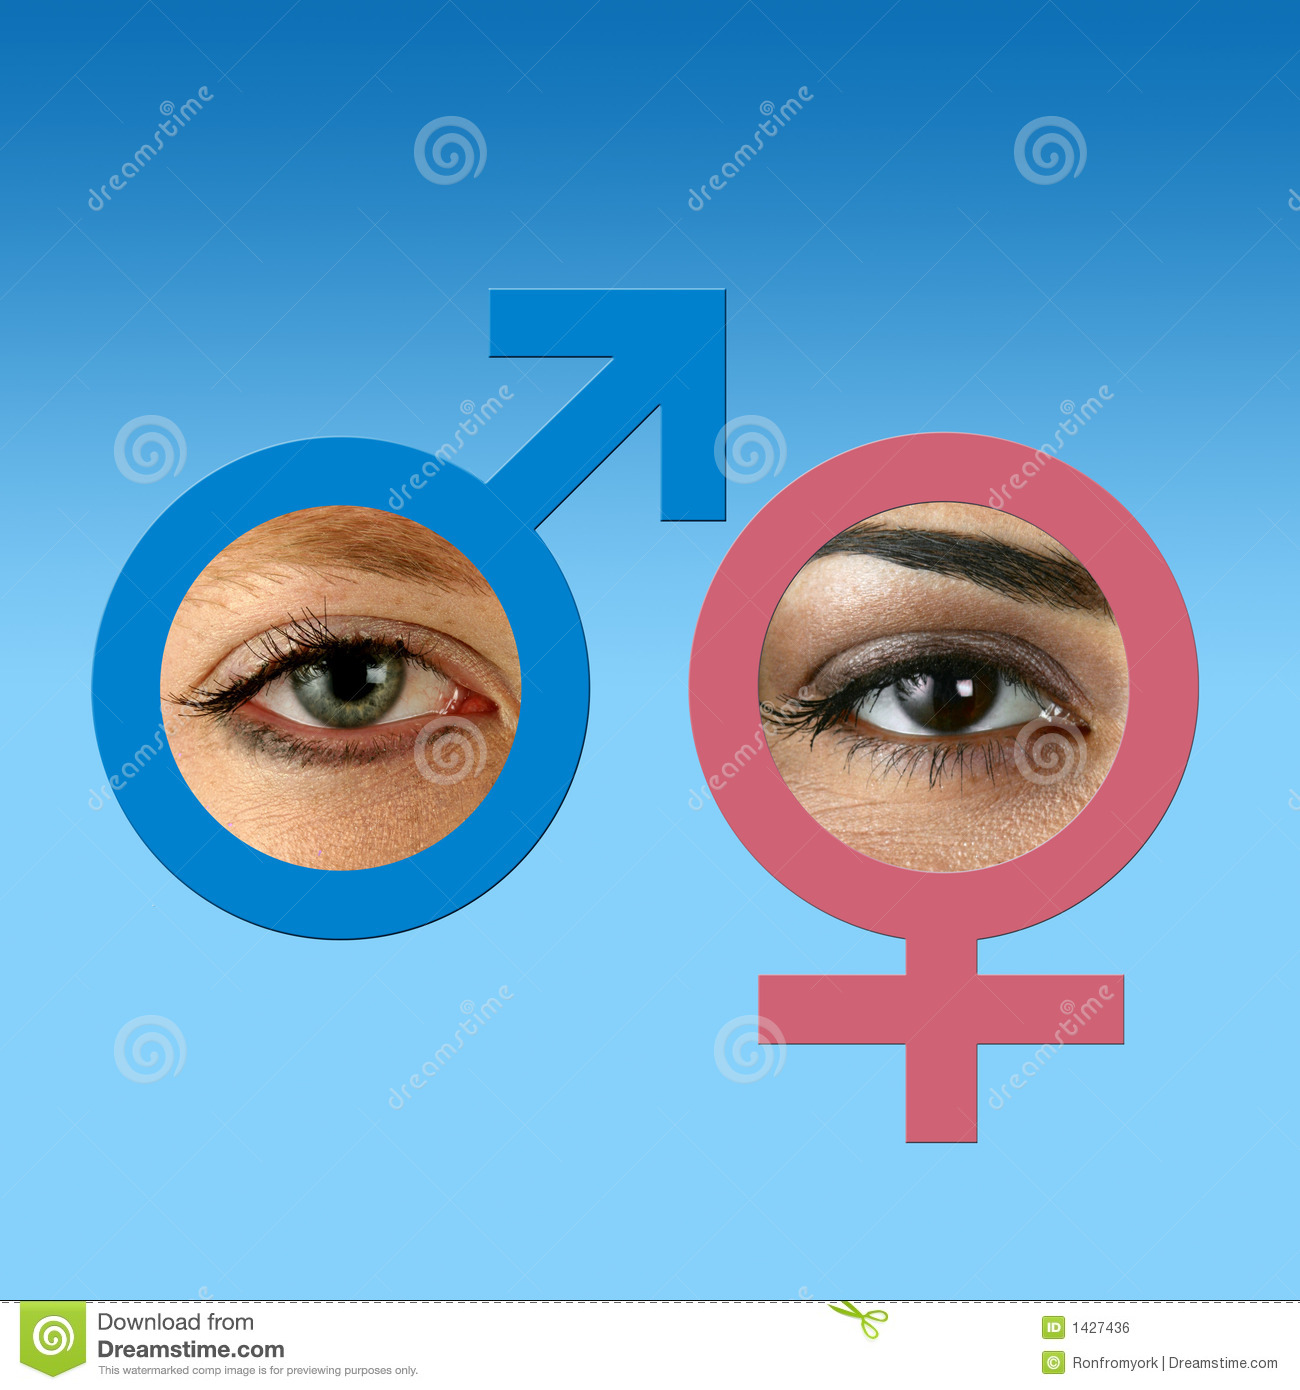 male and female eyes on grad blue royalty free stock image Eye Doctor Cartoons eye clinic clipart